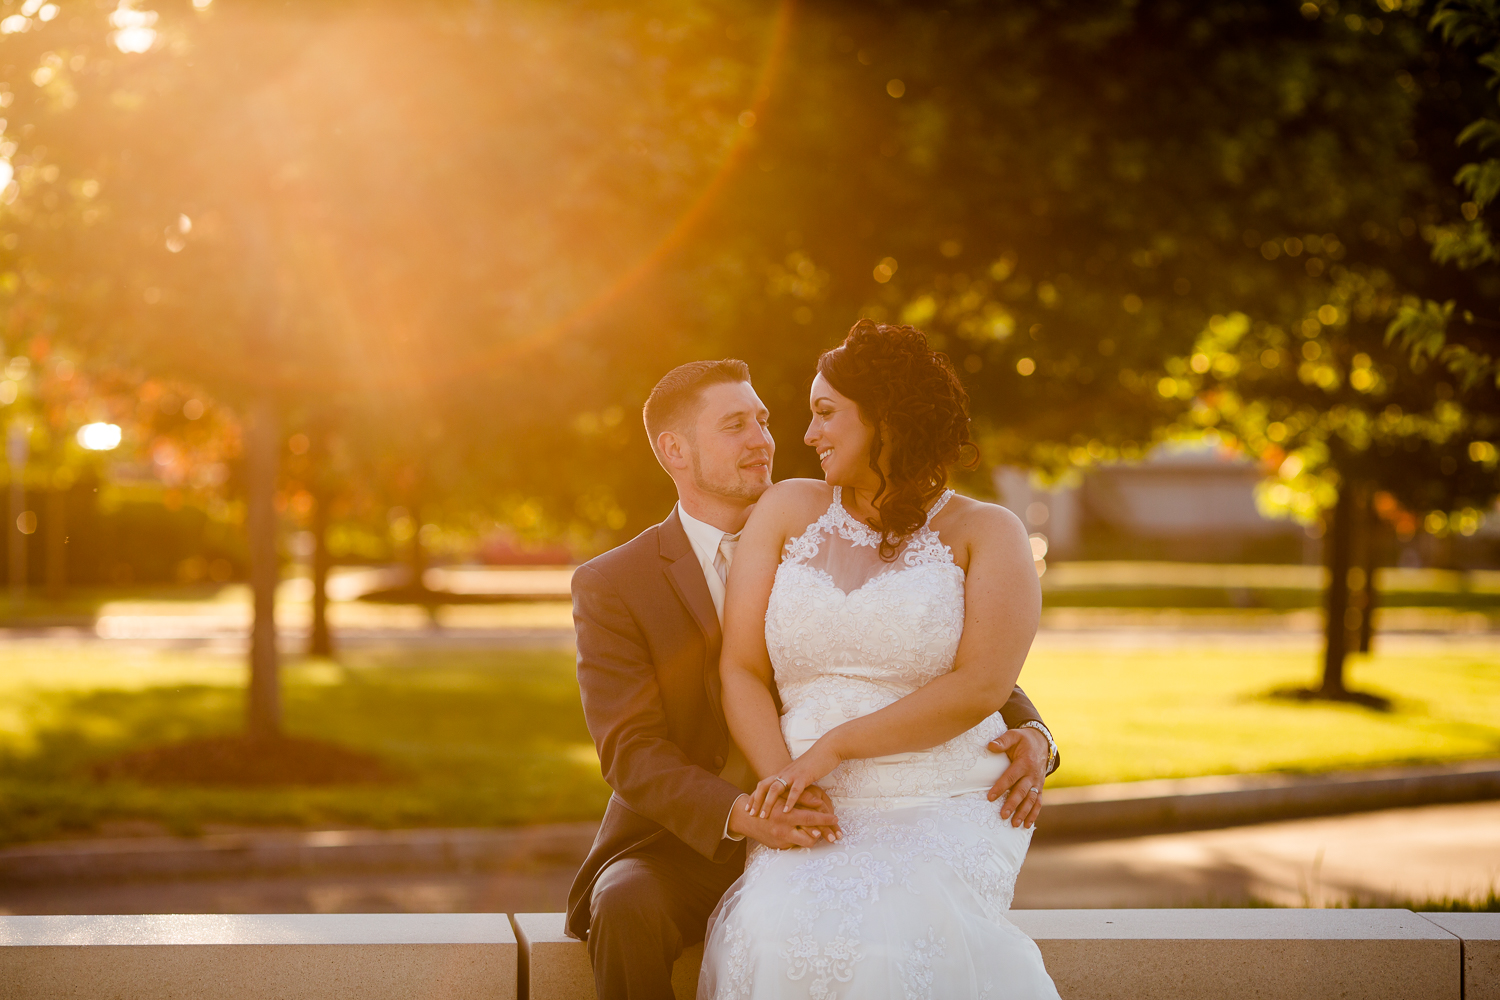 Bride and groom look at each other sweetly. There is sun flare in the image. The bride is sitting on the grooms lap.